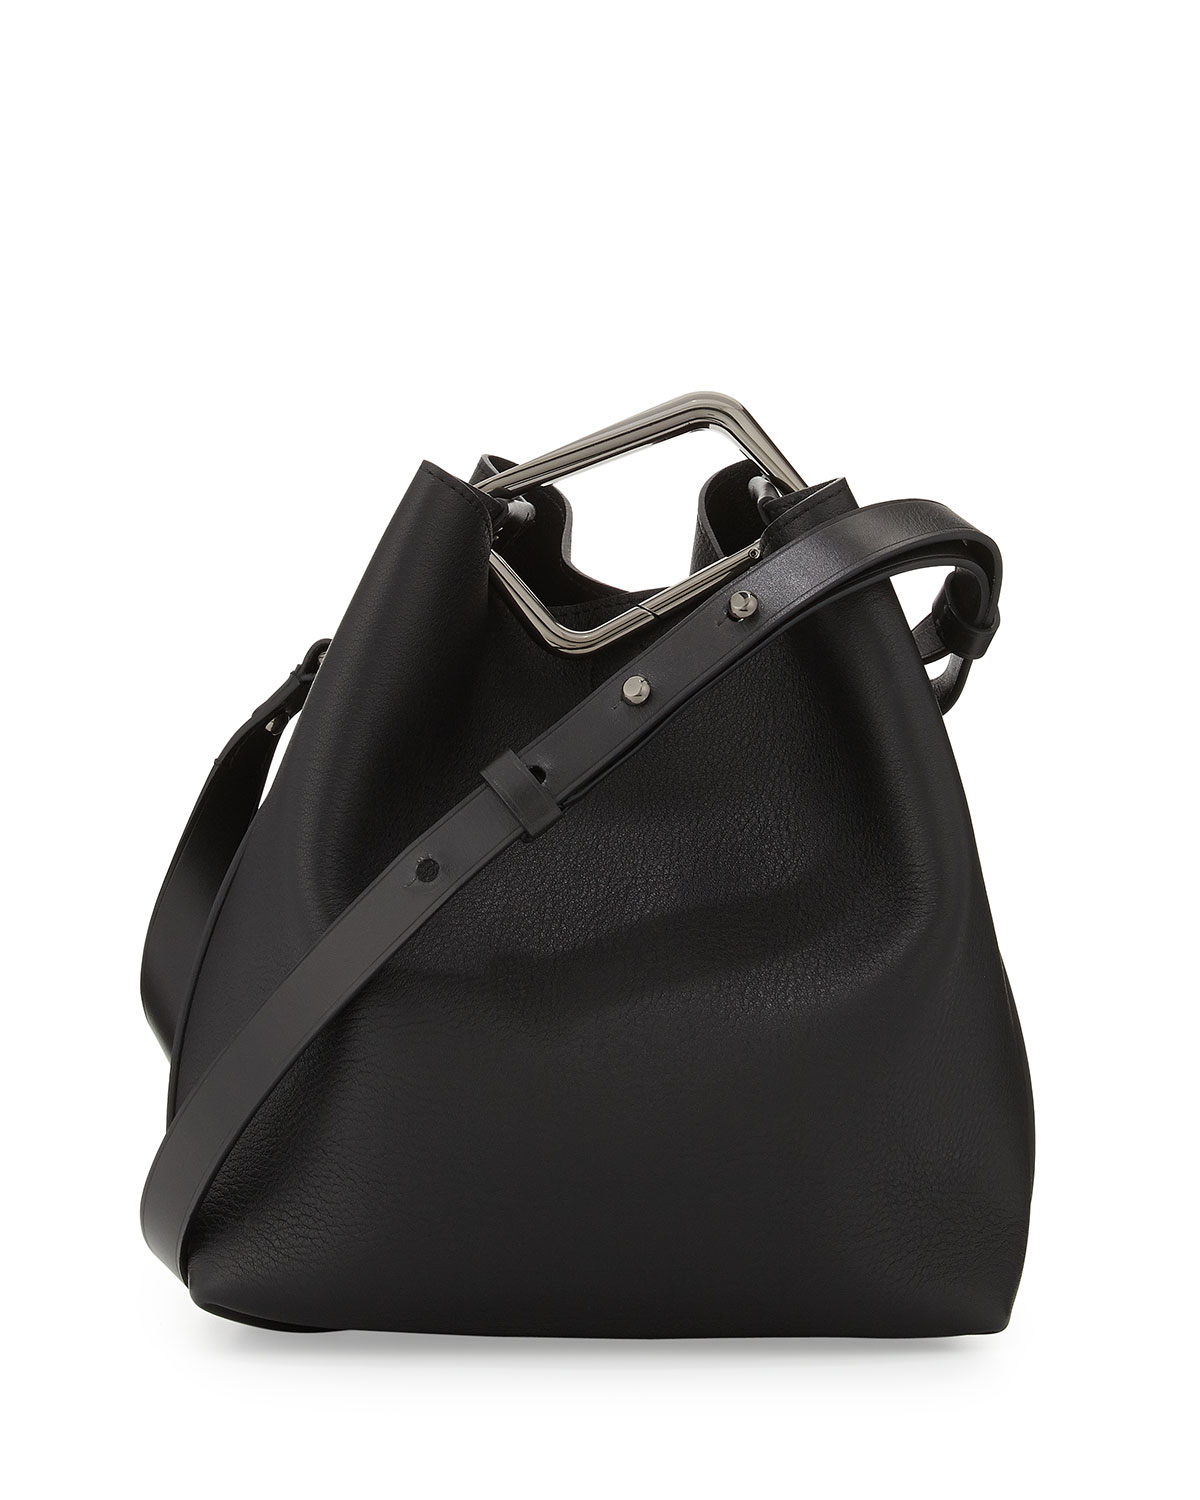 Quill Mini Bucket Bag, Black